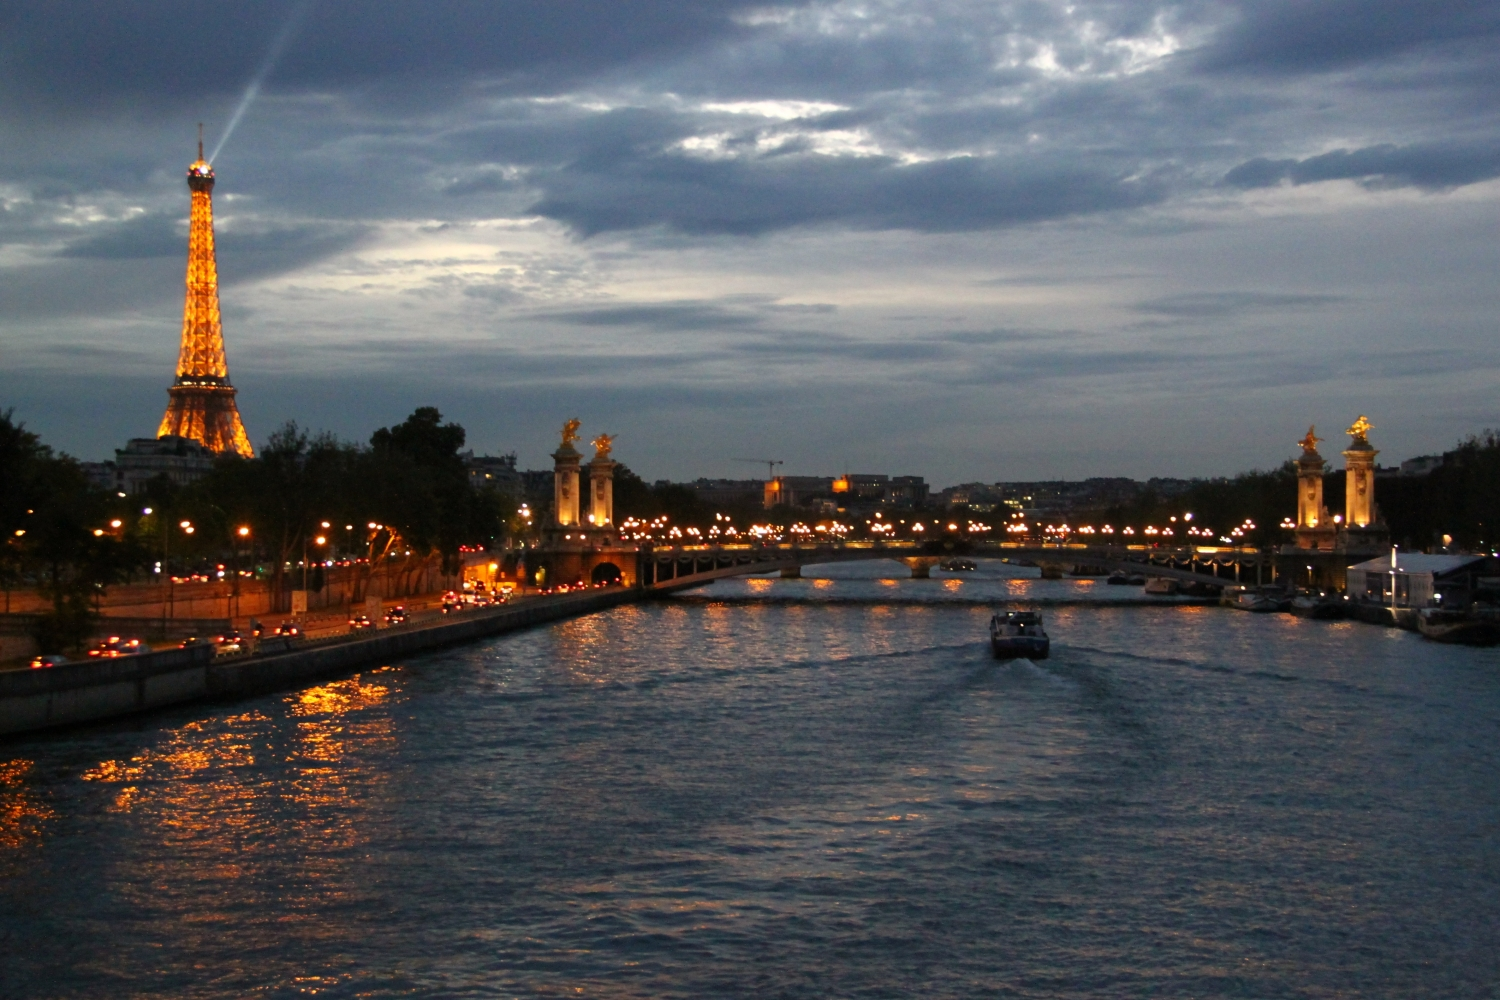 Eiffel Tower - Seine night